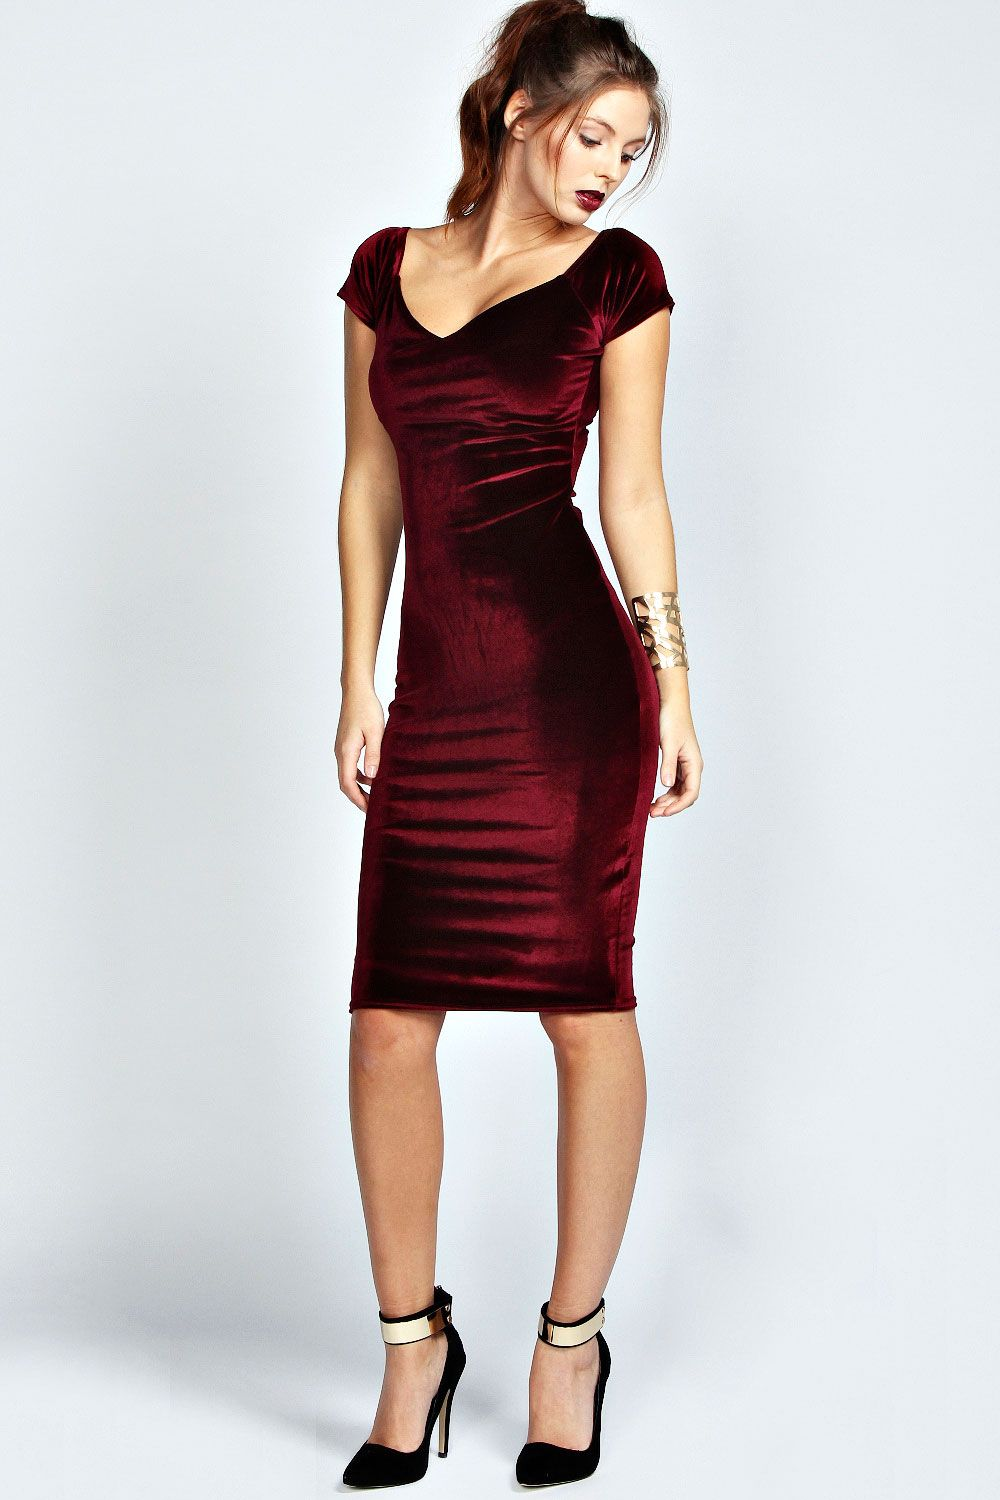 Vivian Velvet Midi Bodycon Dress                                                                                                                                                                                 More